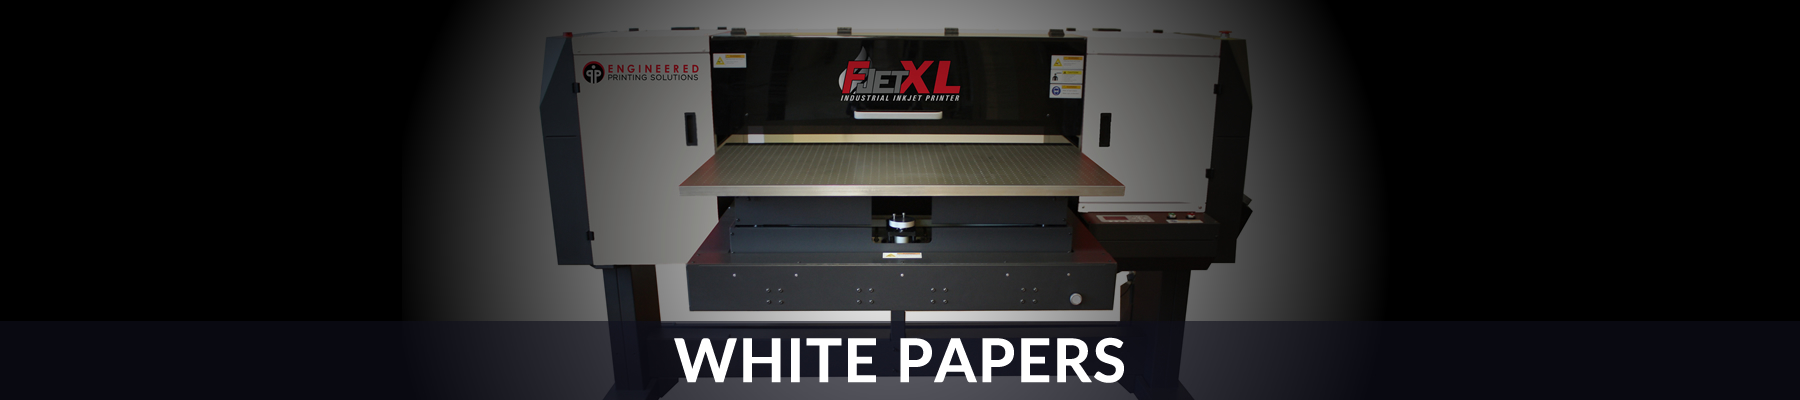 White Papers 9